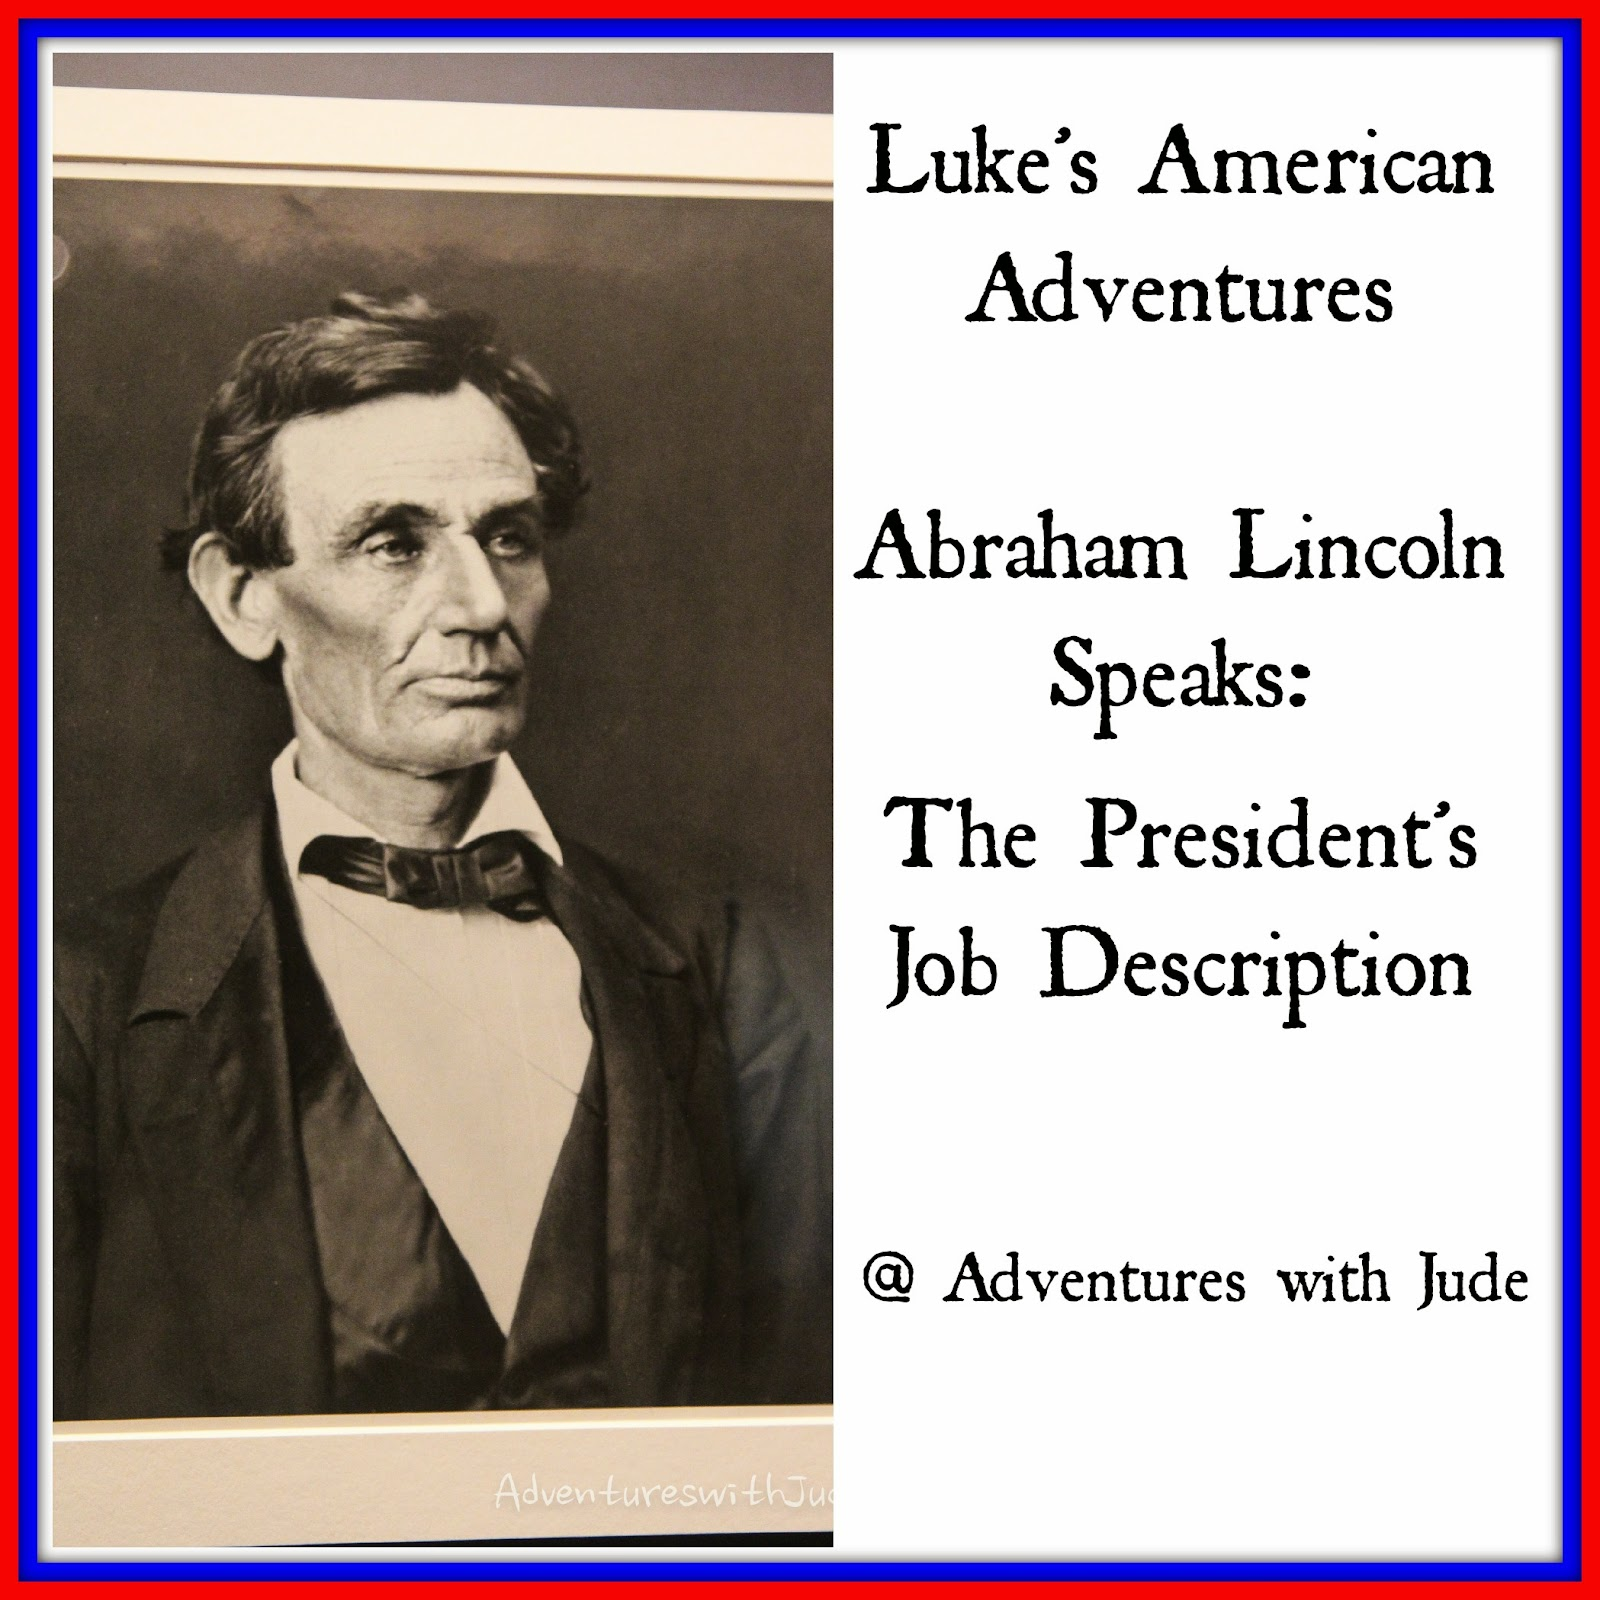 Abraham Lincoln Speaks: The President's Job Description